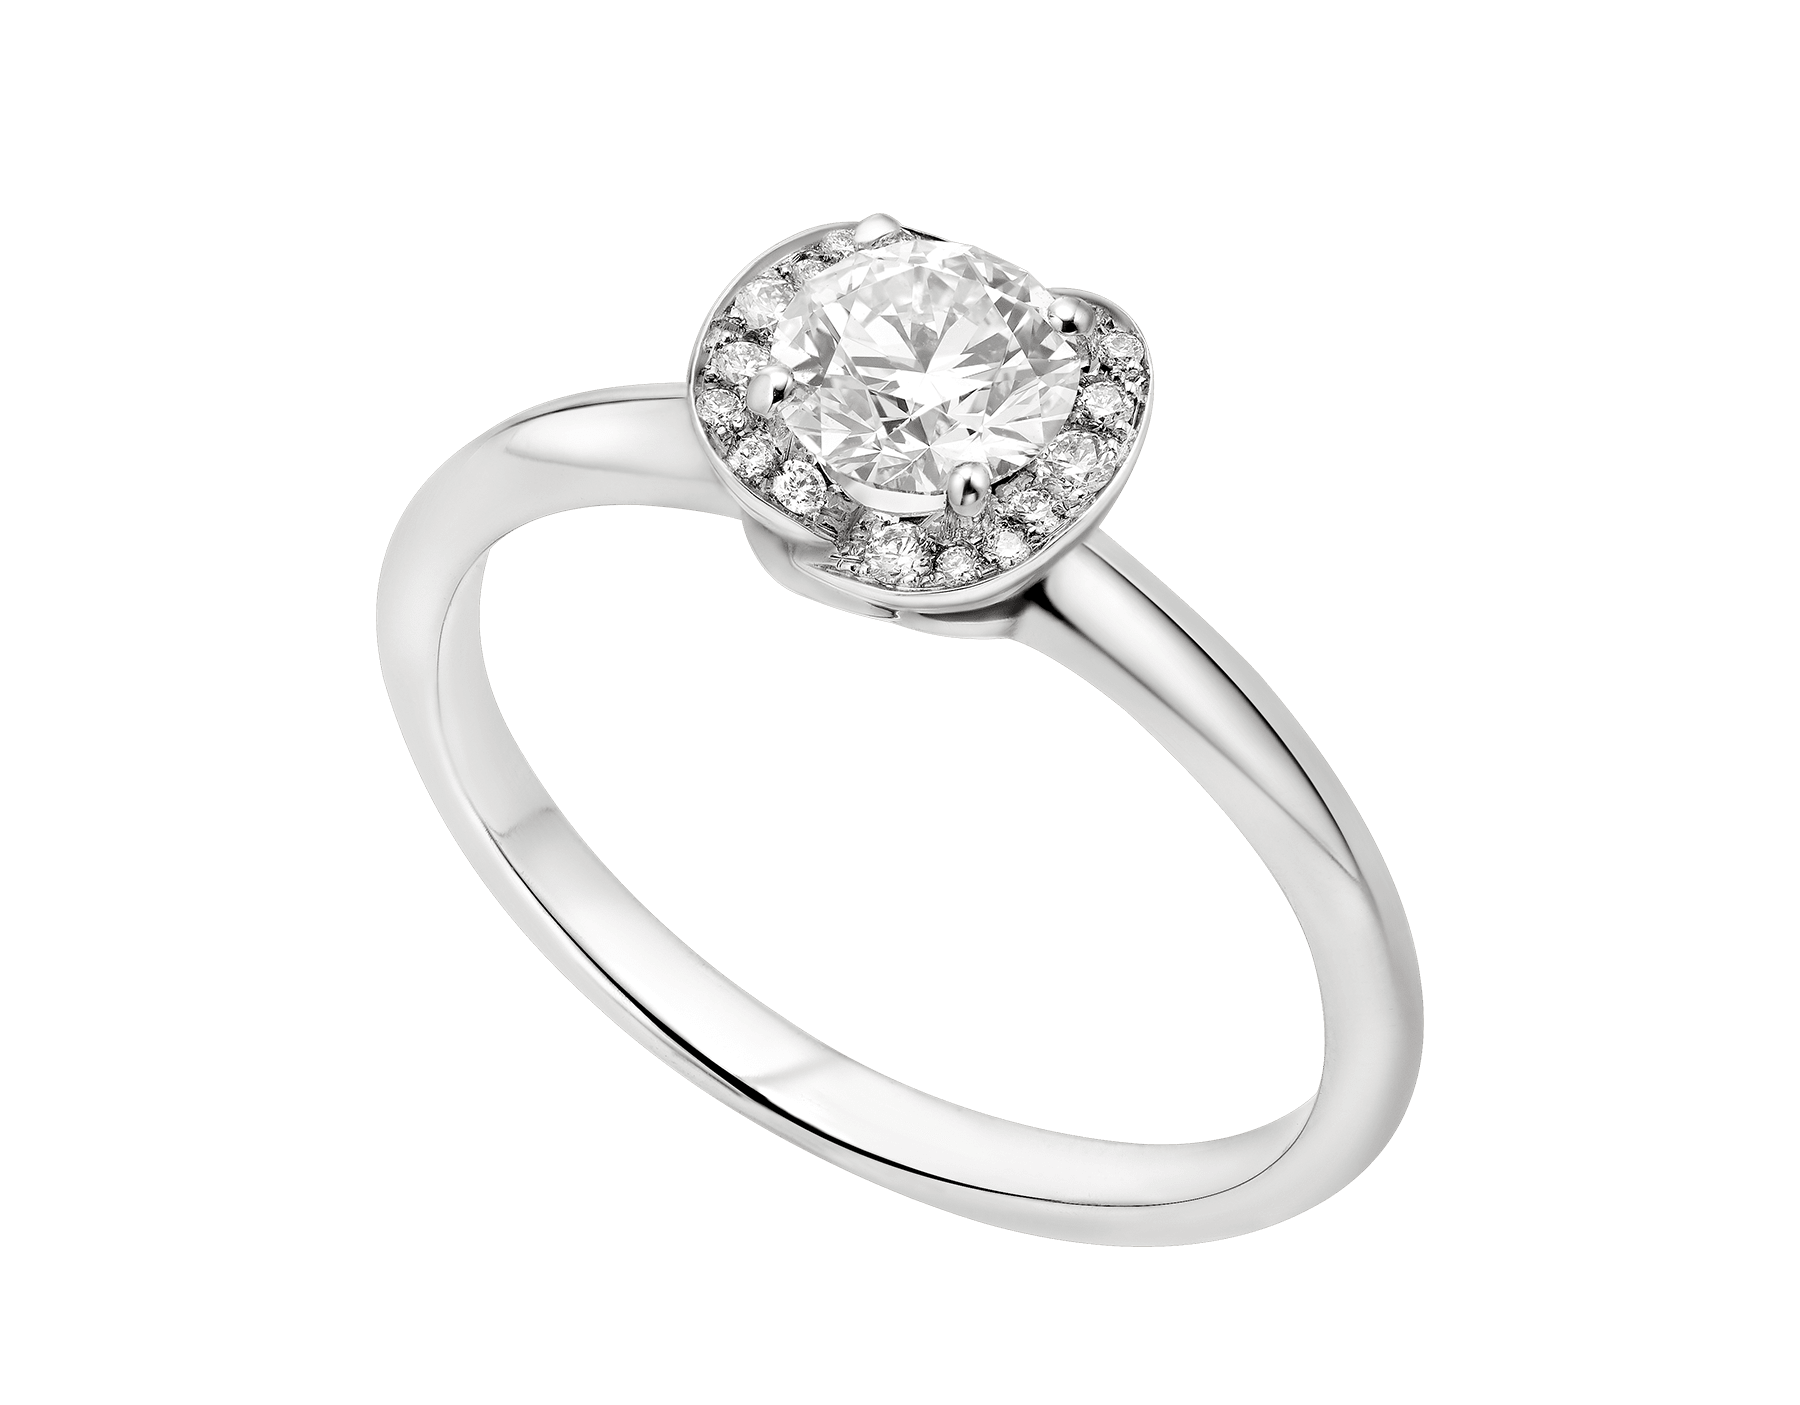 Incontro d'Amore platinum ring set with a round brilliant-cut diamond and a halo of pavé diamonds. 355383 image 1